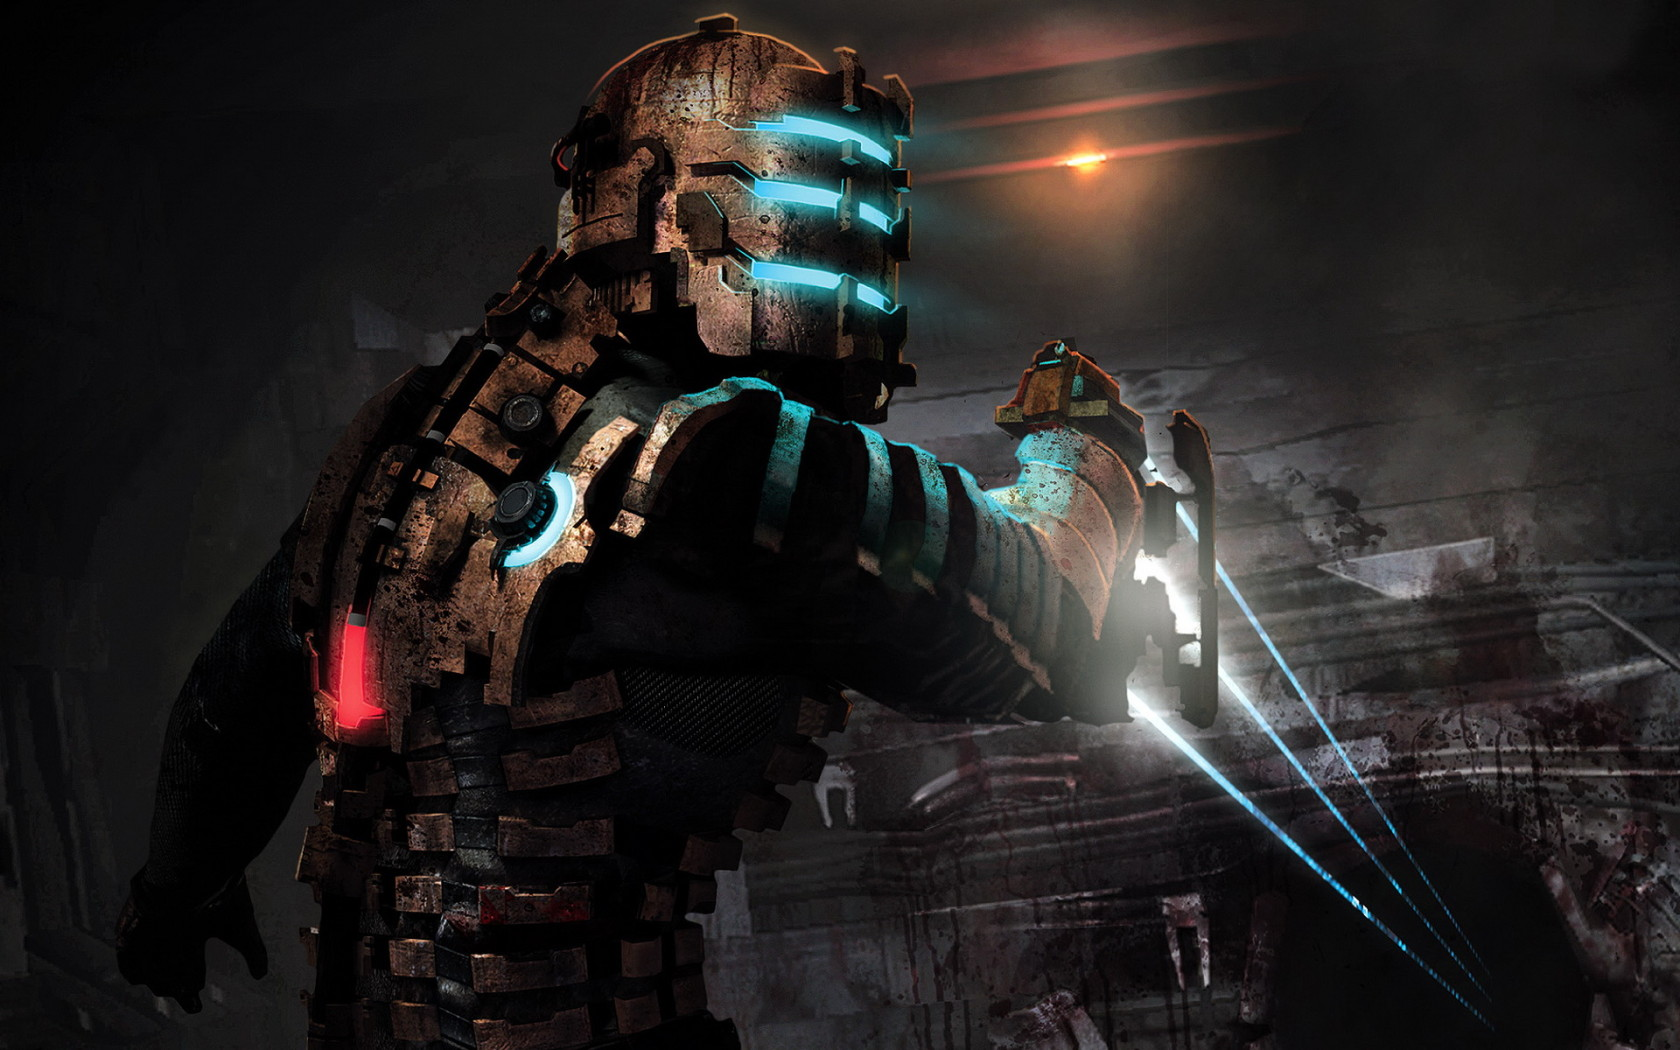 Dead Space - Painting Wallpaper 1 (1280x960)